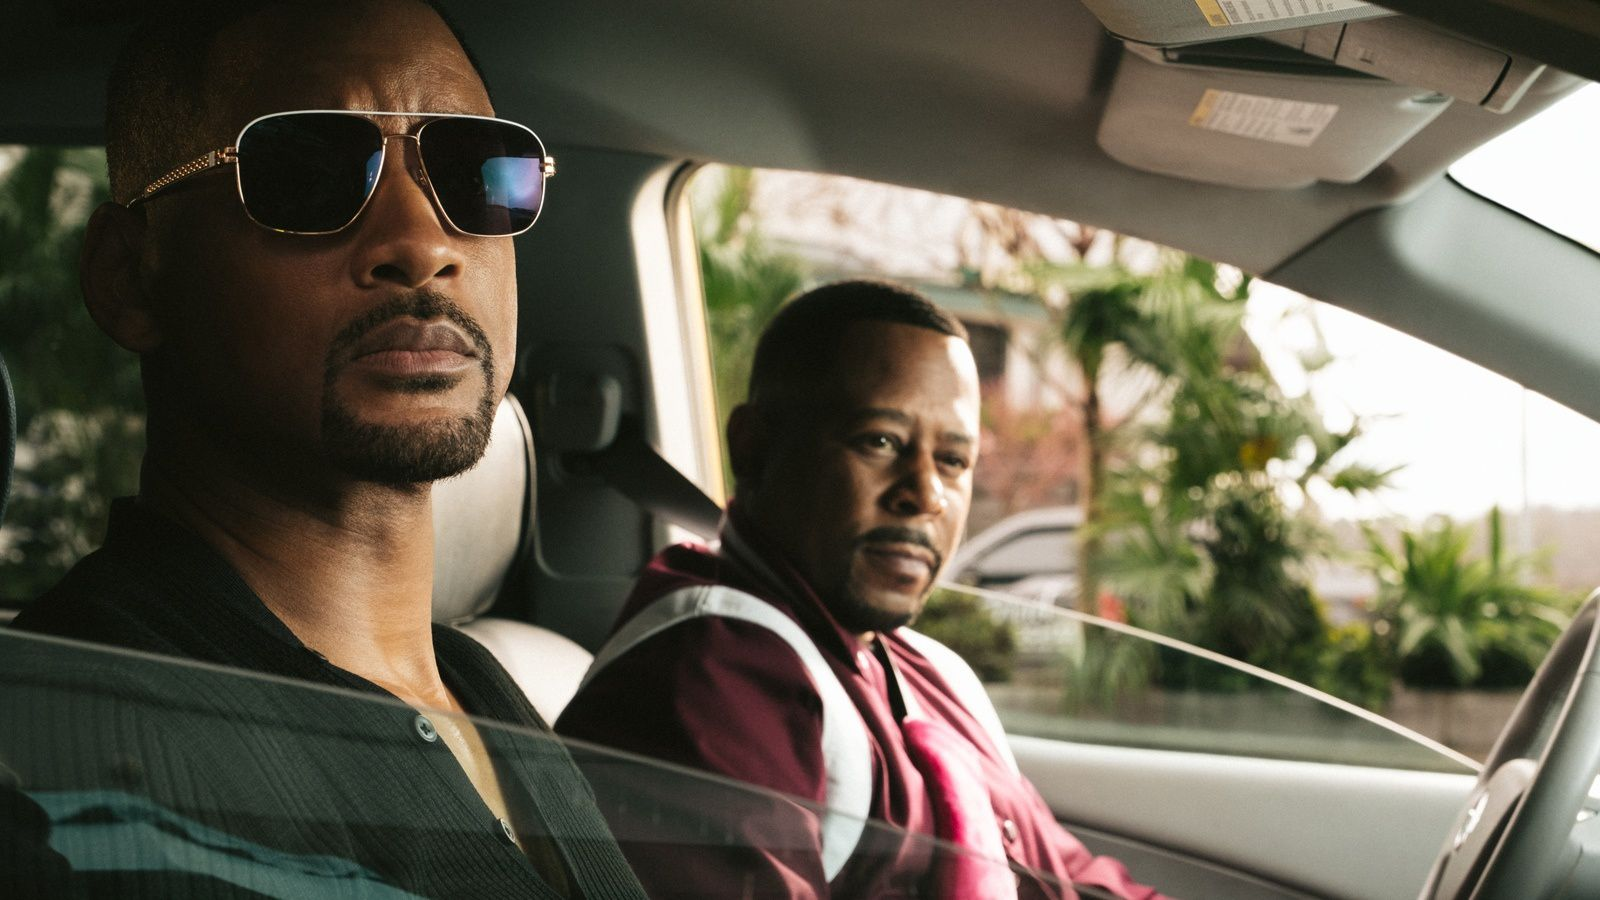 Bad Boys For Life (BANDE-ANNONCE + 3 EXTRAITS) avec Will Smith, Martin Lawrence, Joe Pantoliano - Le 22 janvier 2020 au cinéma